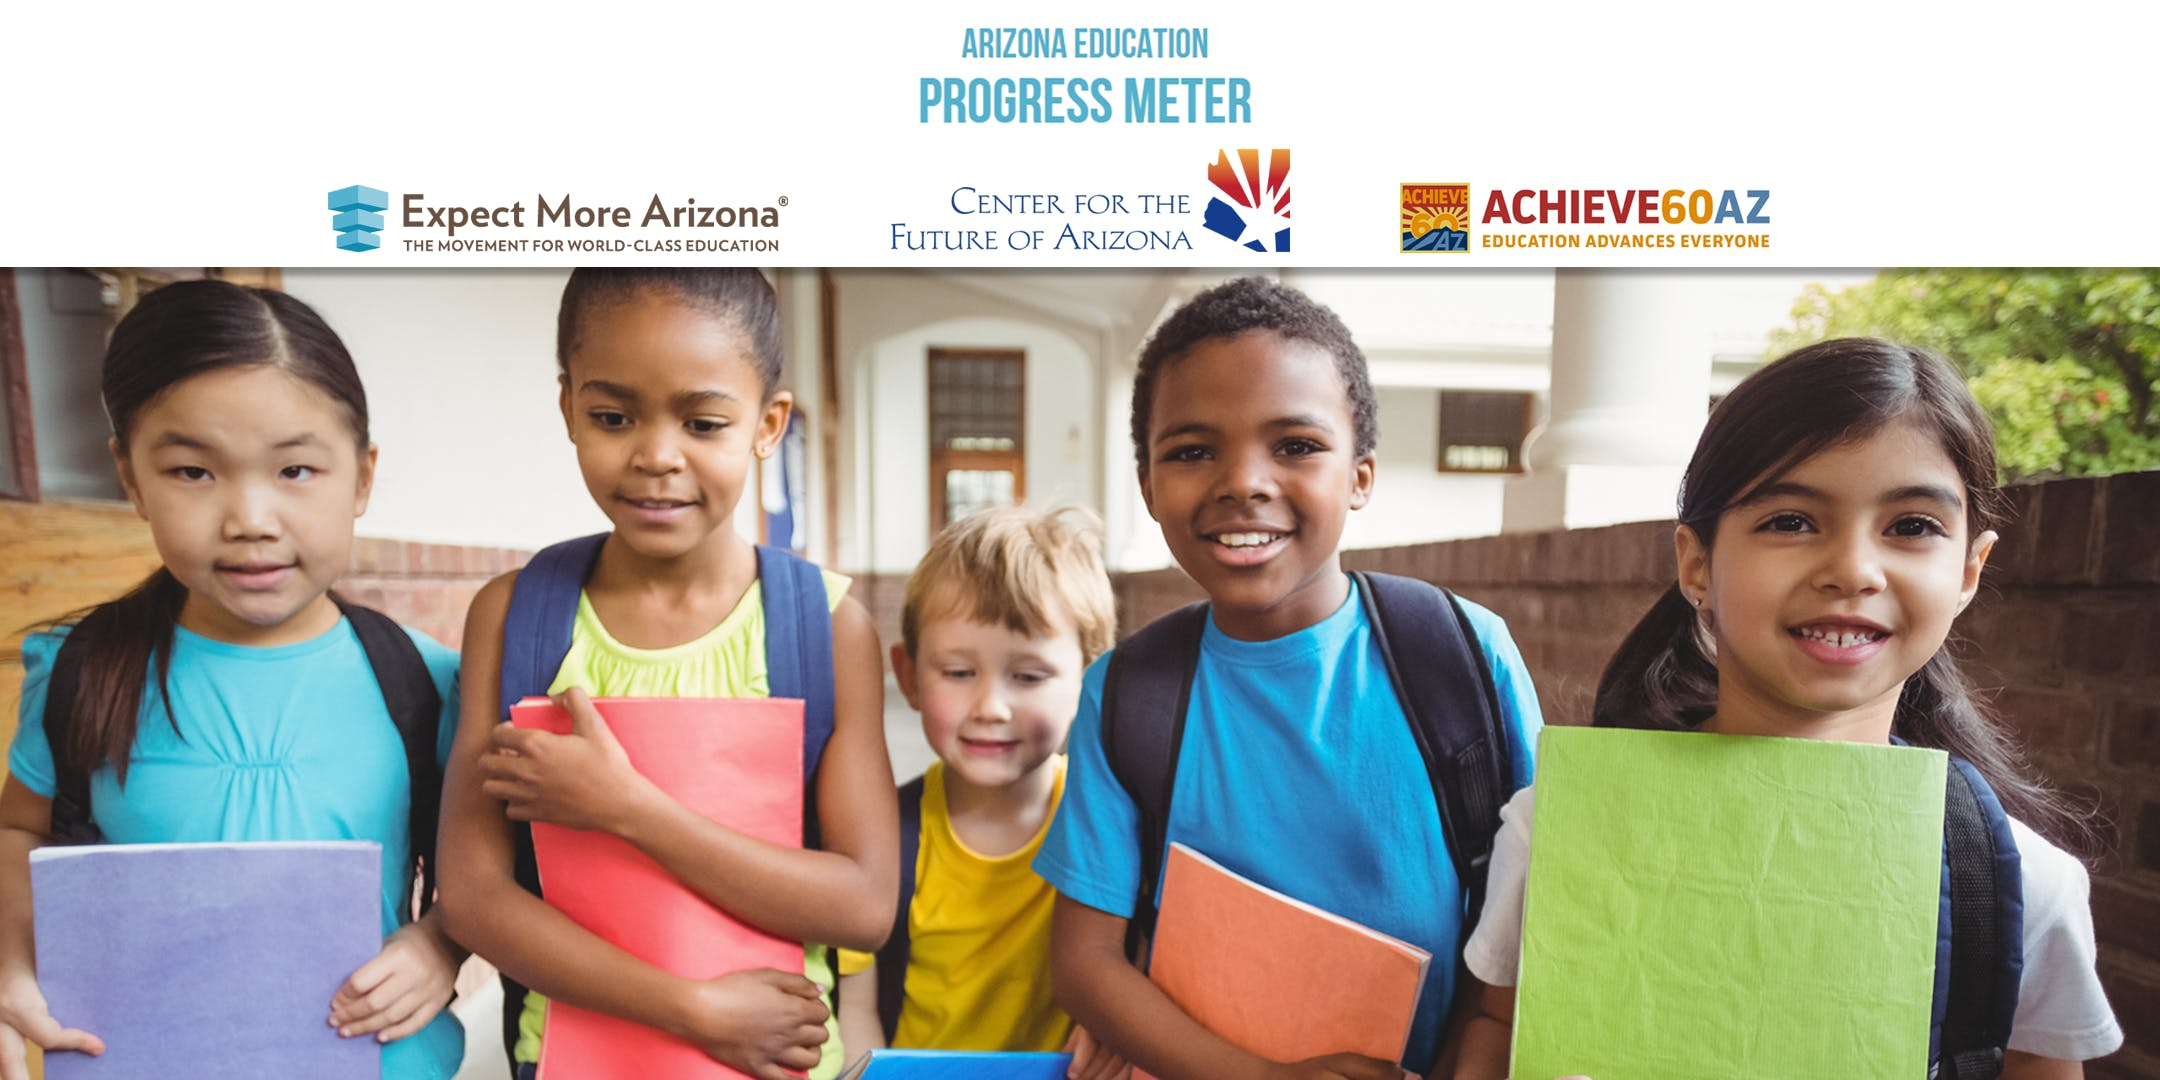 Arizona Education Progress Meter and Statewide Attainment Goal